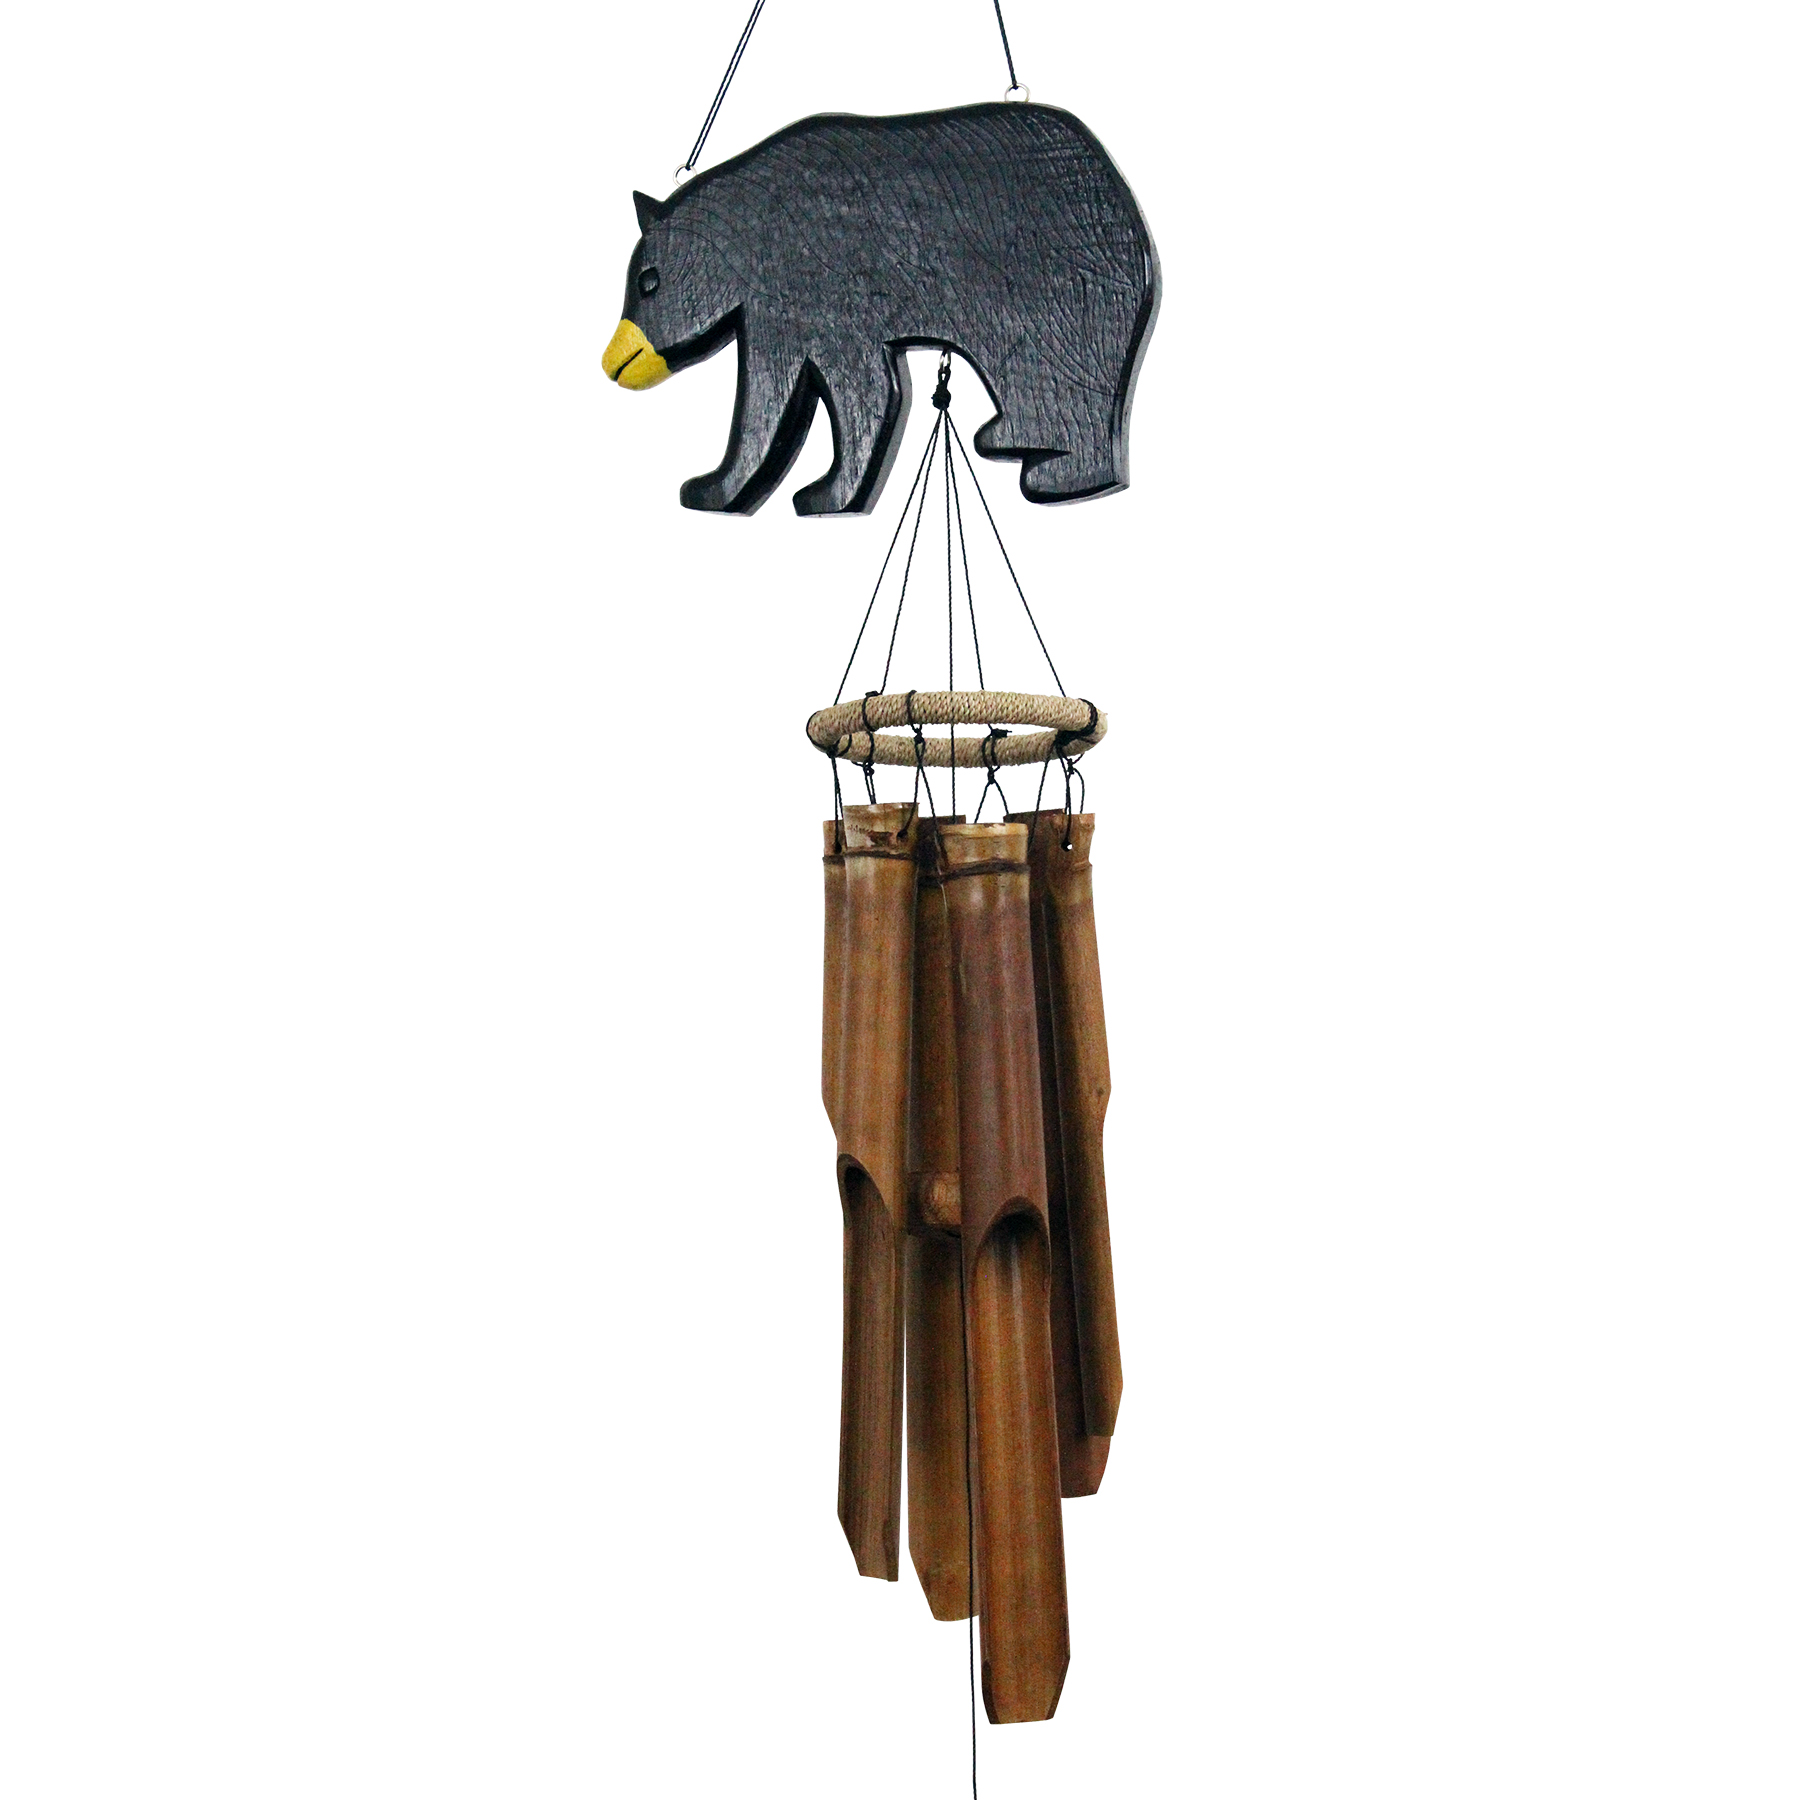 171BBS - Black Bear Silhouette Bamboo Wind Chime